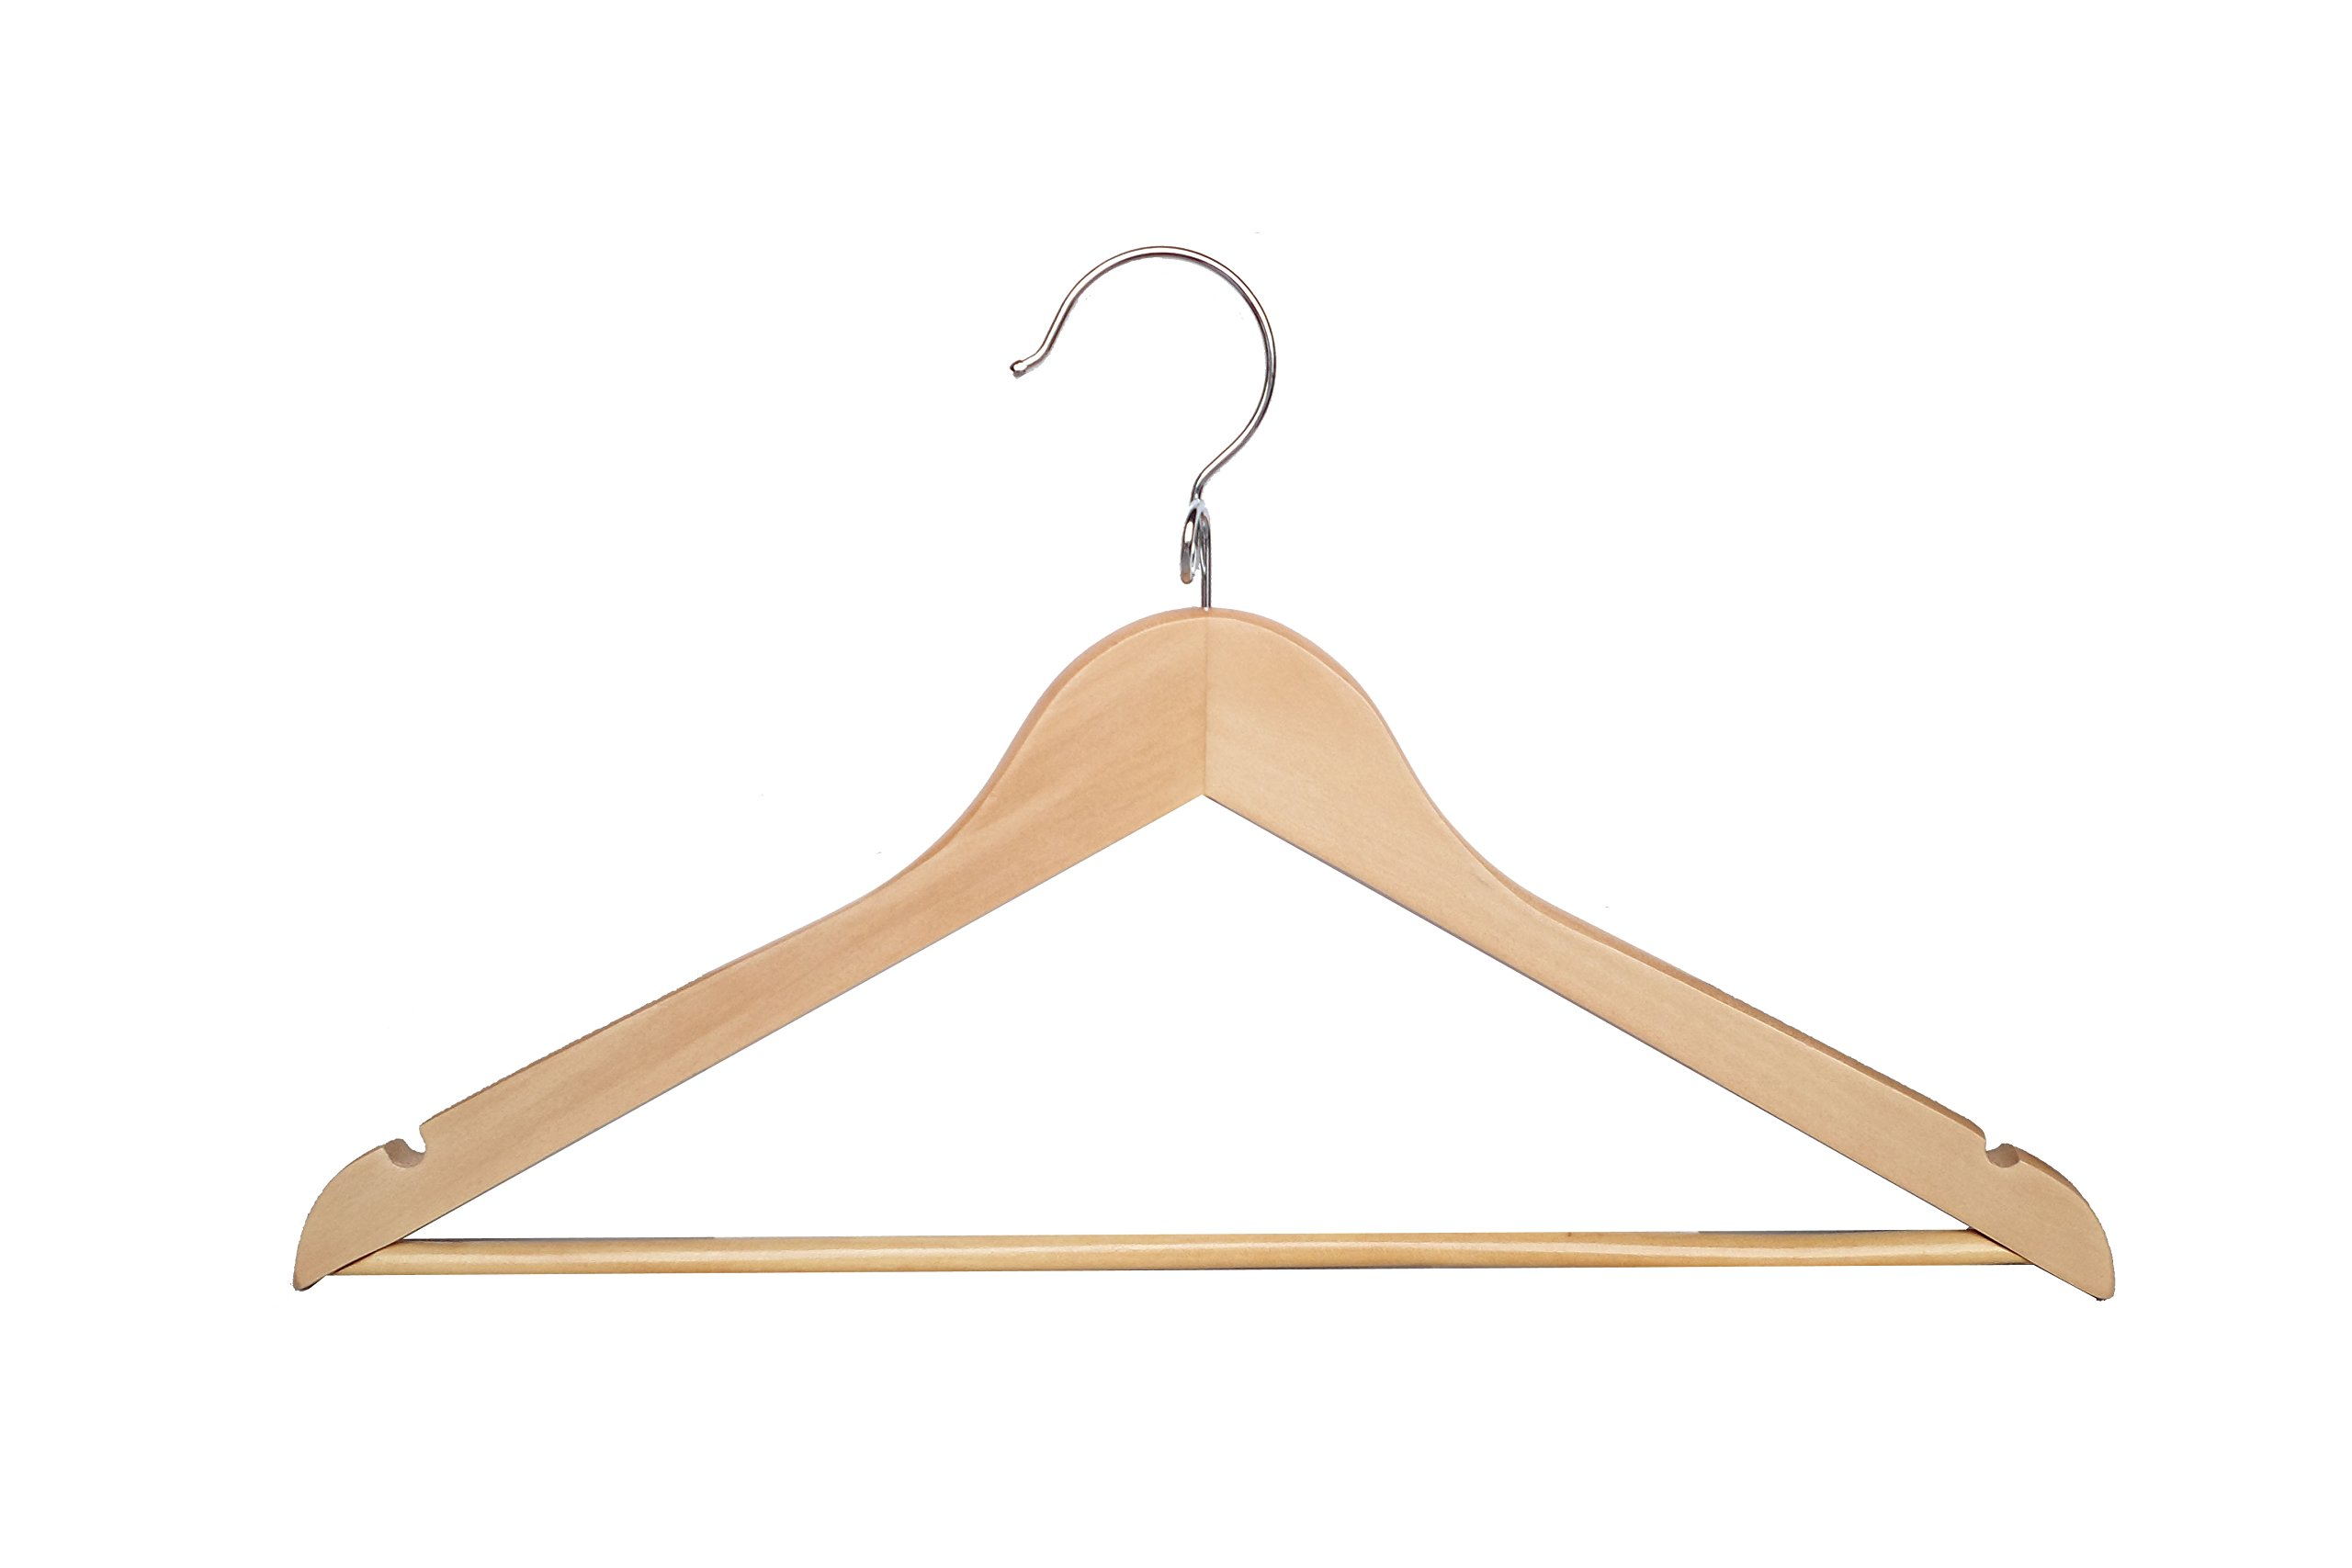 Proman Products KSA9030 Natural Wood Kascade Hanger, by Proman Products